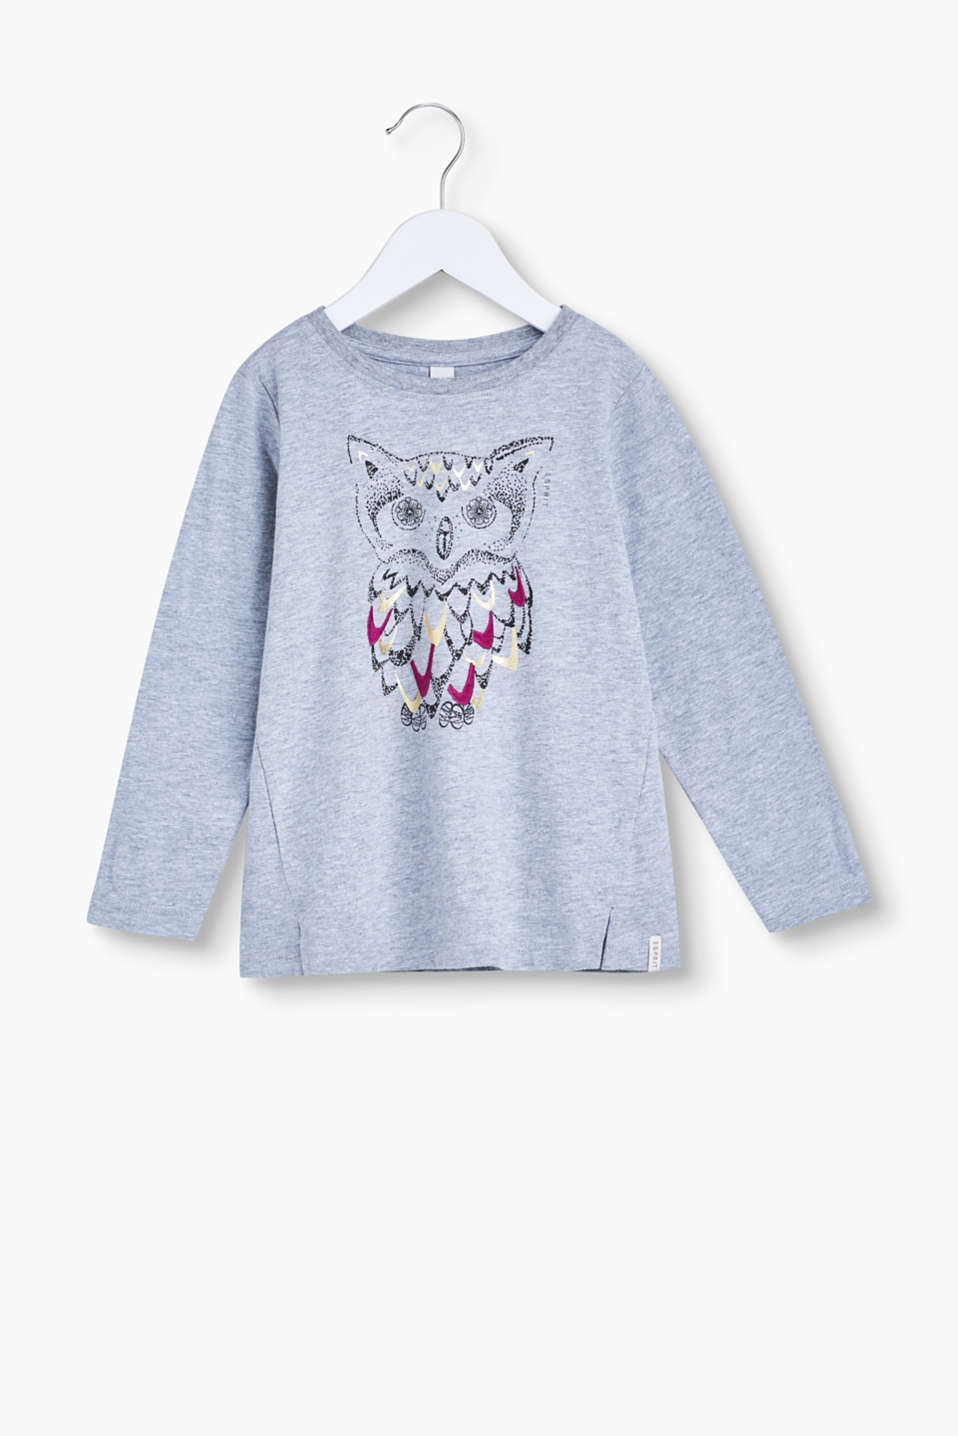 Gorgeously glittery! This soft cotton long sleeve top is a pretty, eye-catching piece thanks to its shimmery owl print.